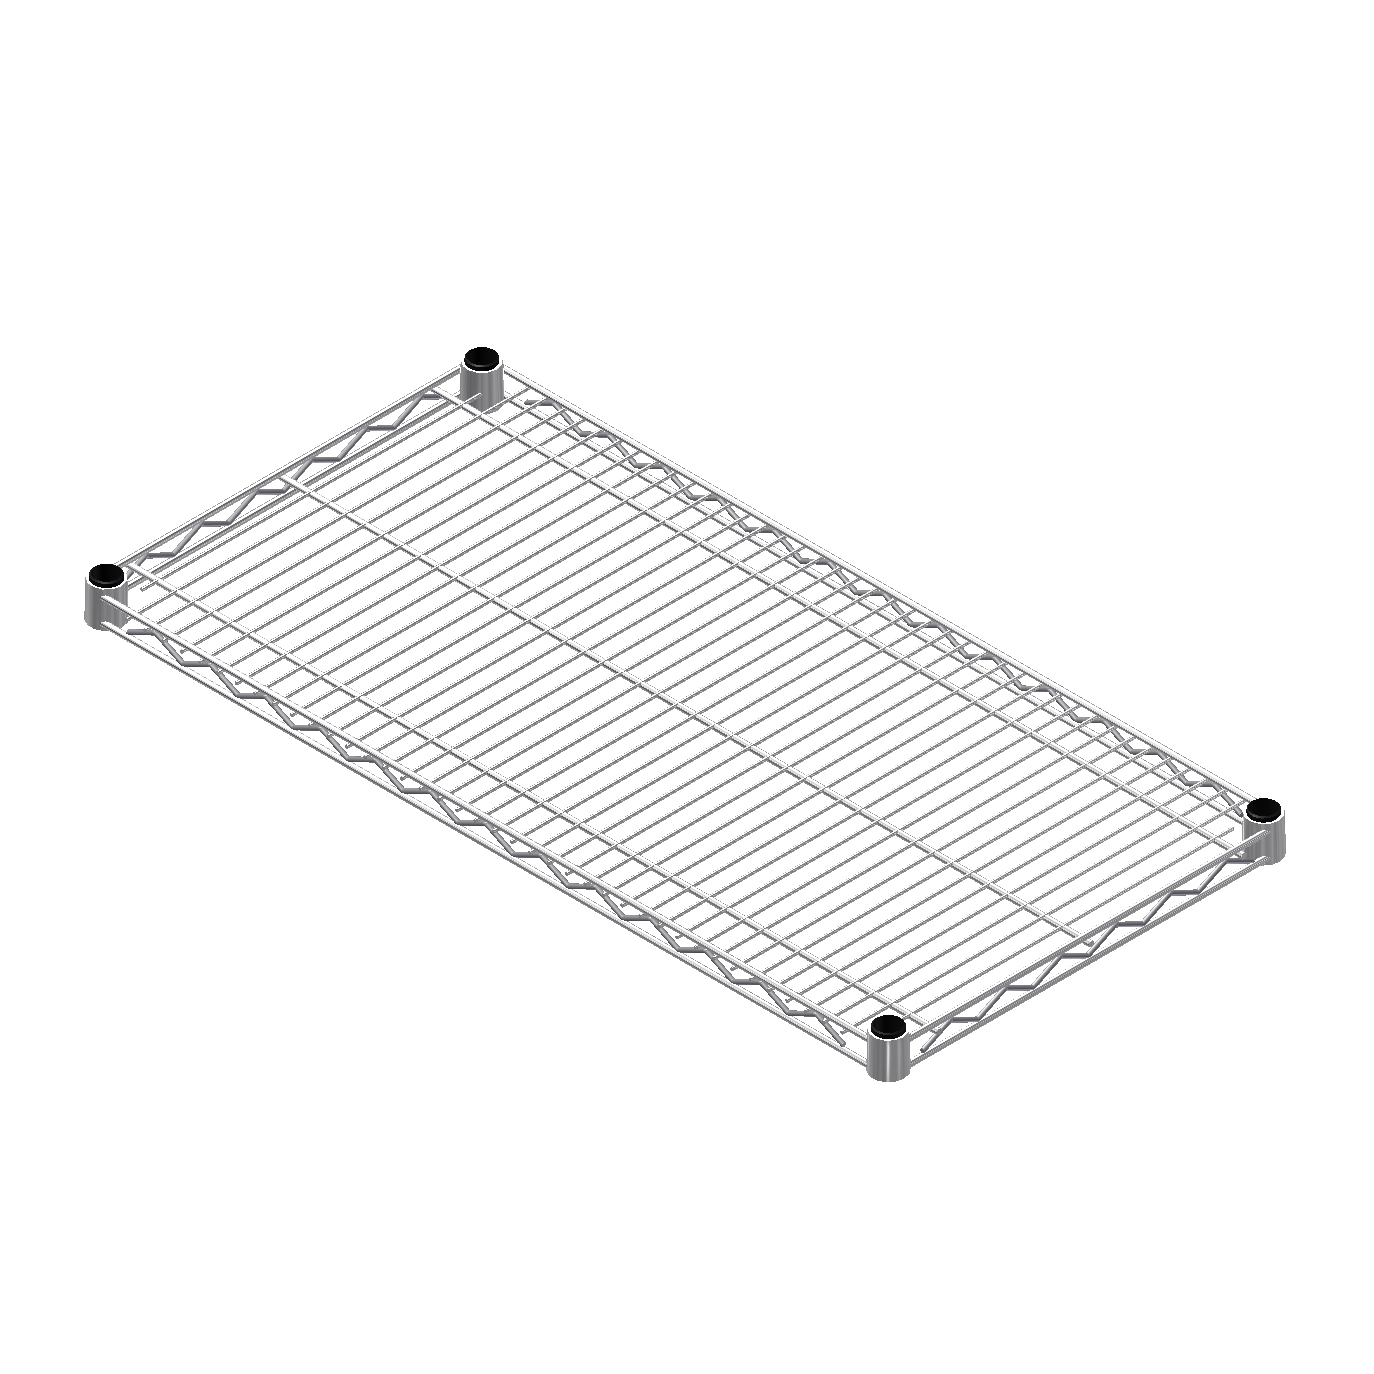 24 X 48 Heavy Duty Metal Wire Shelf